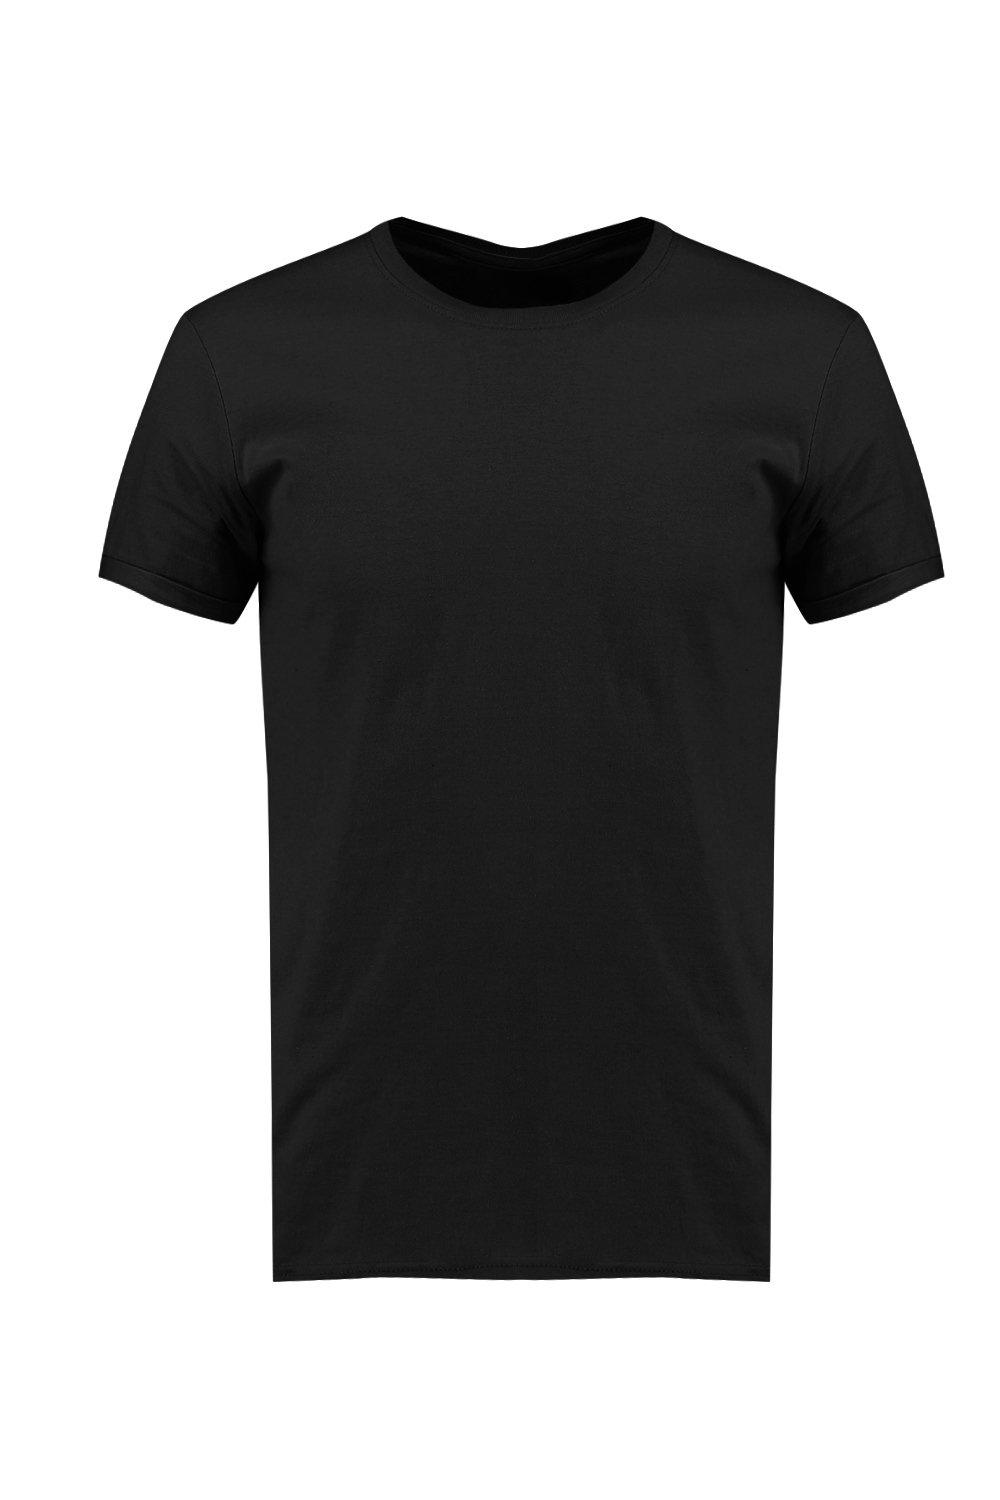 boohooMAN black Crew Neck T-Shirt with Rolled Sleeves